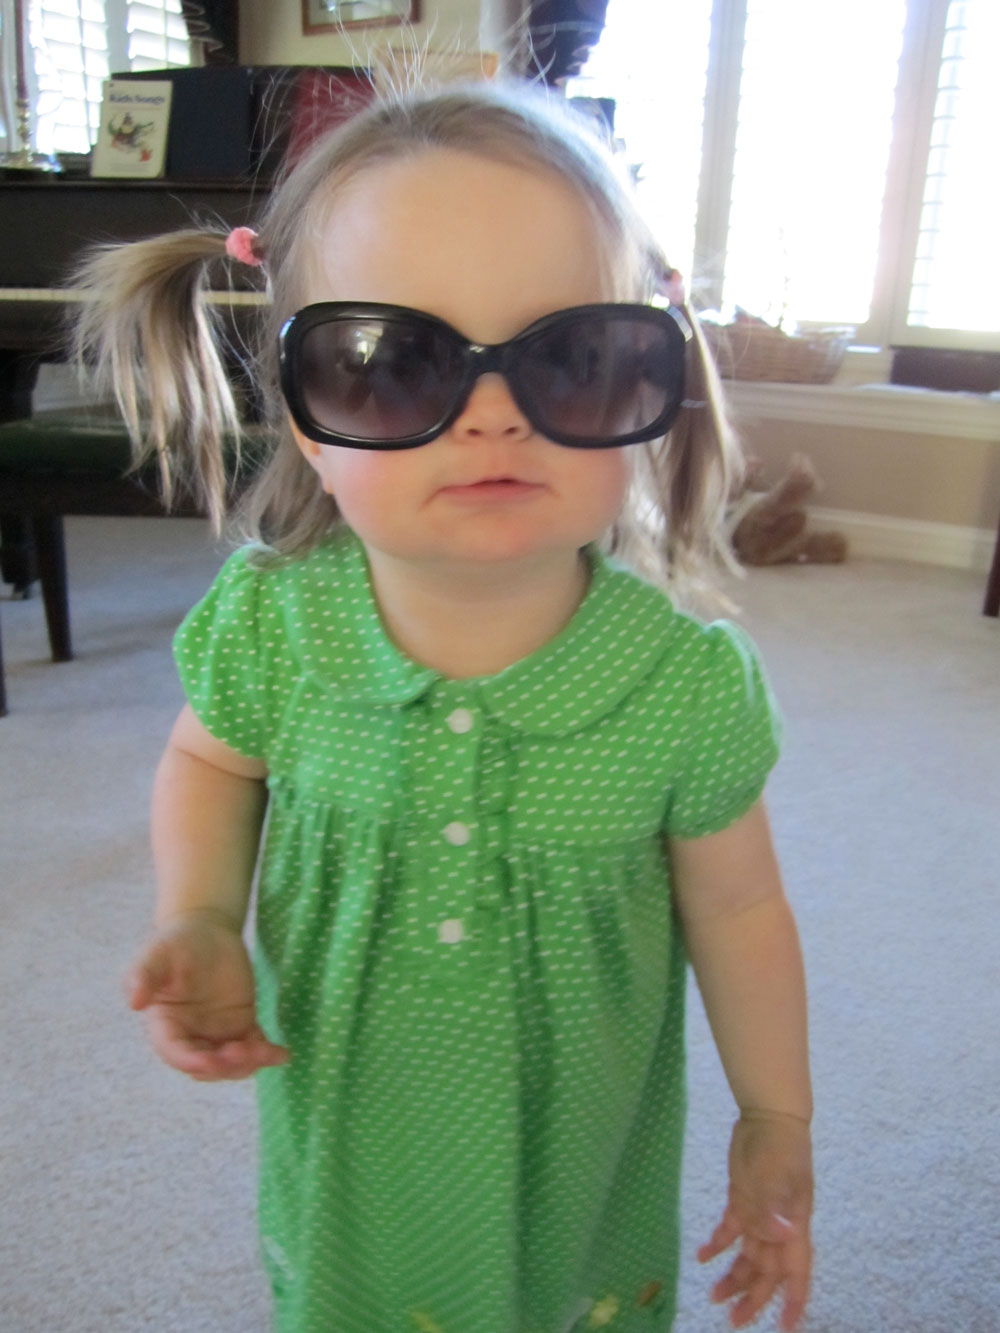 Gigi wearing her mom's sunglasses.